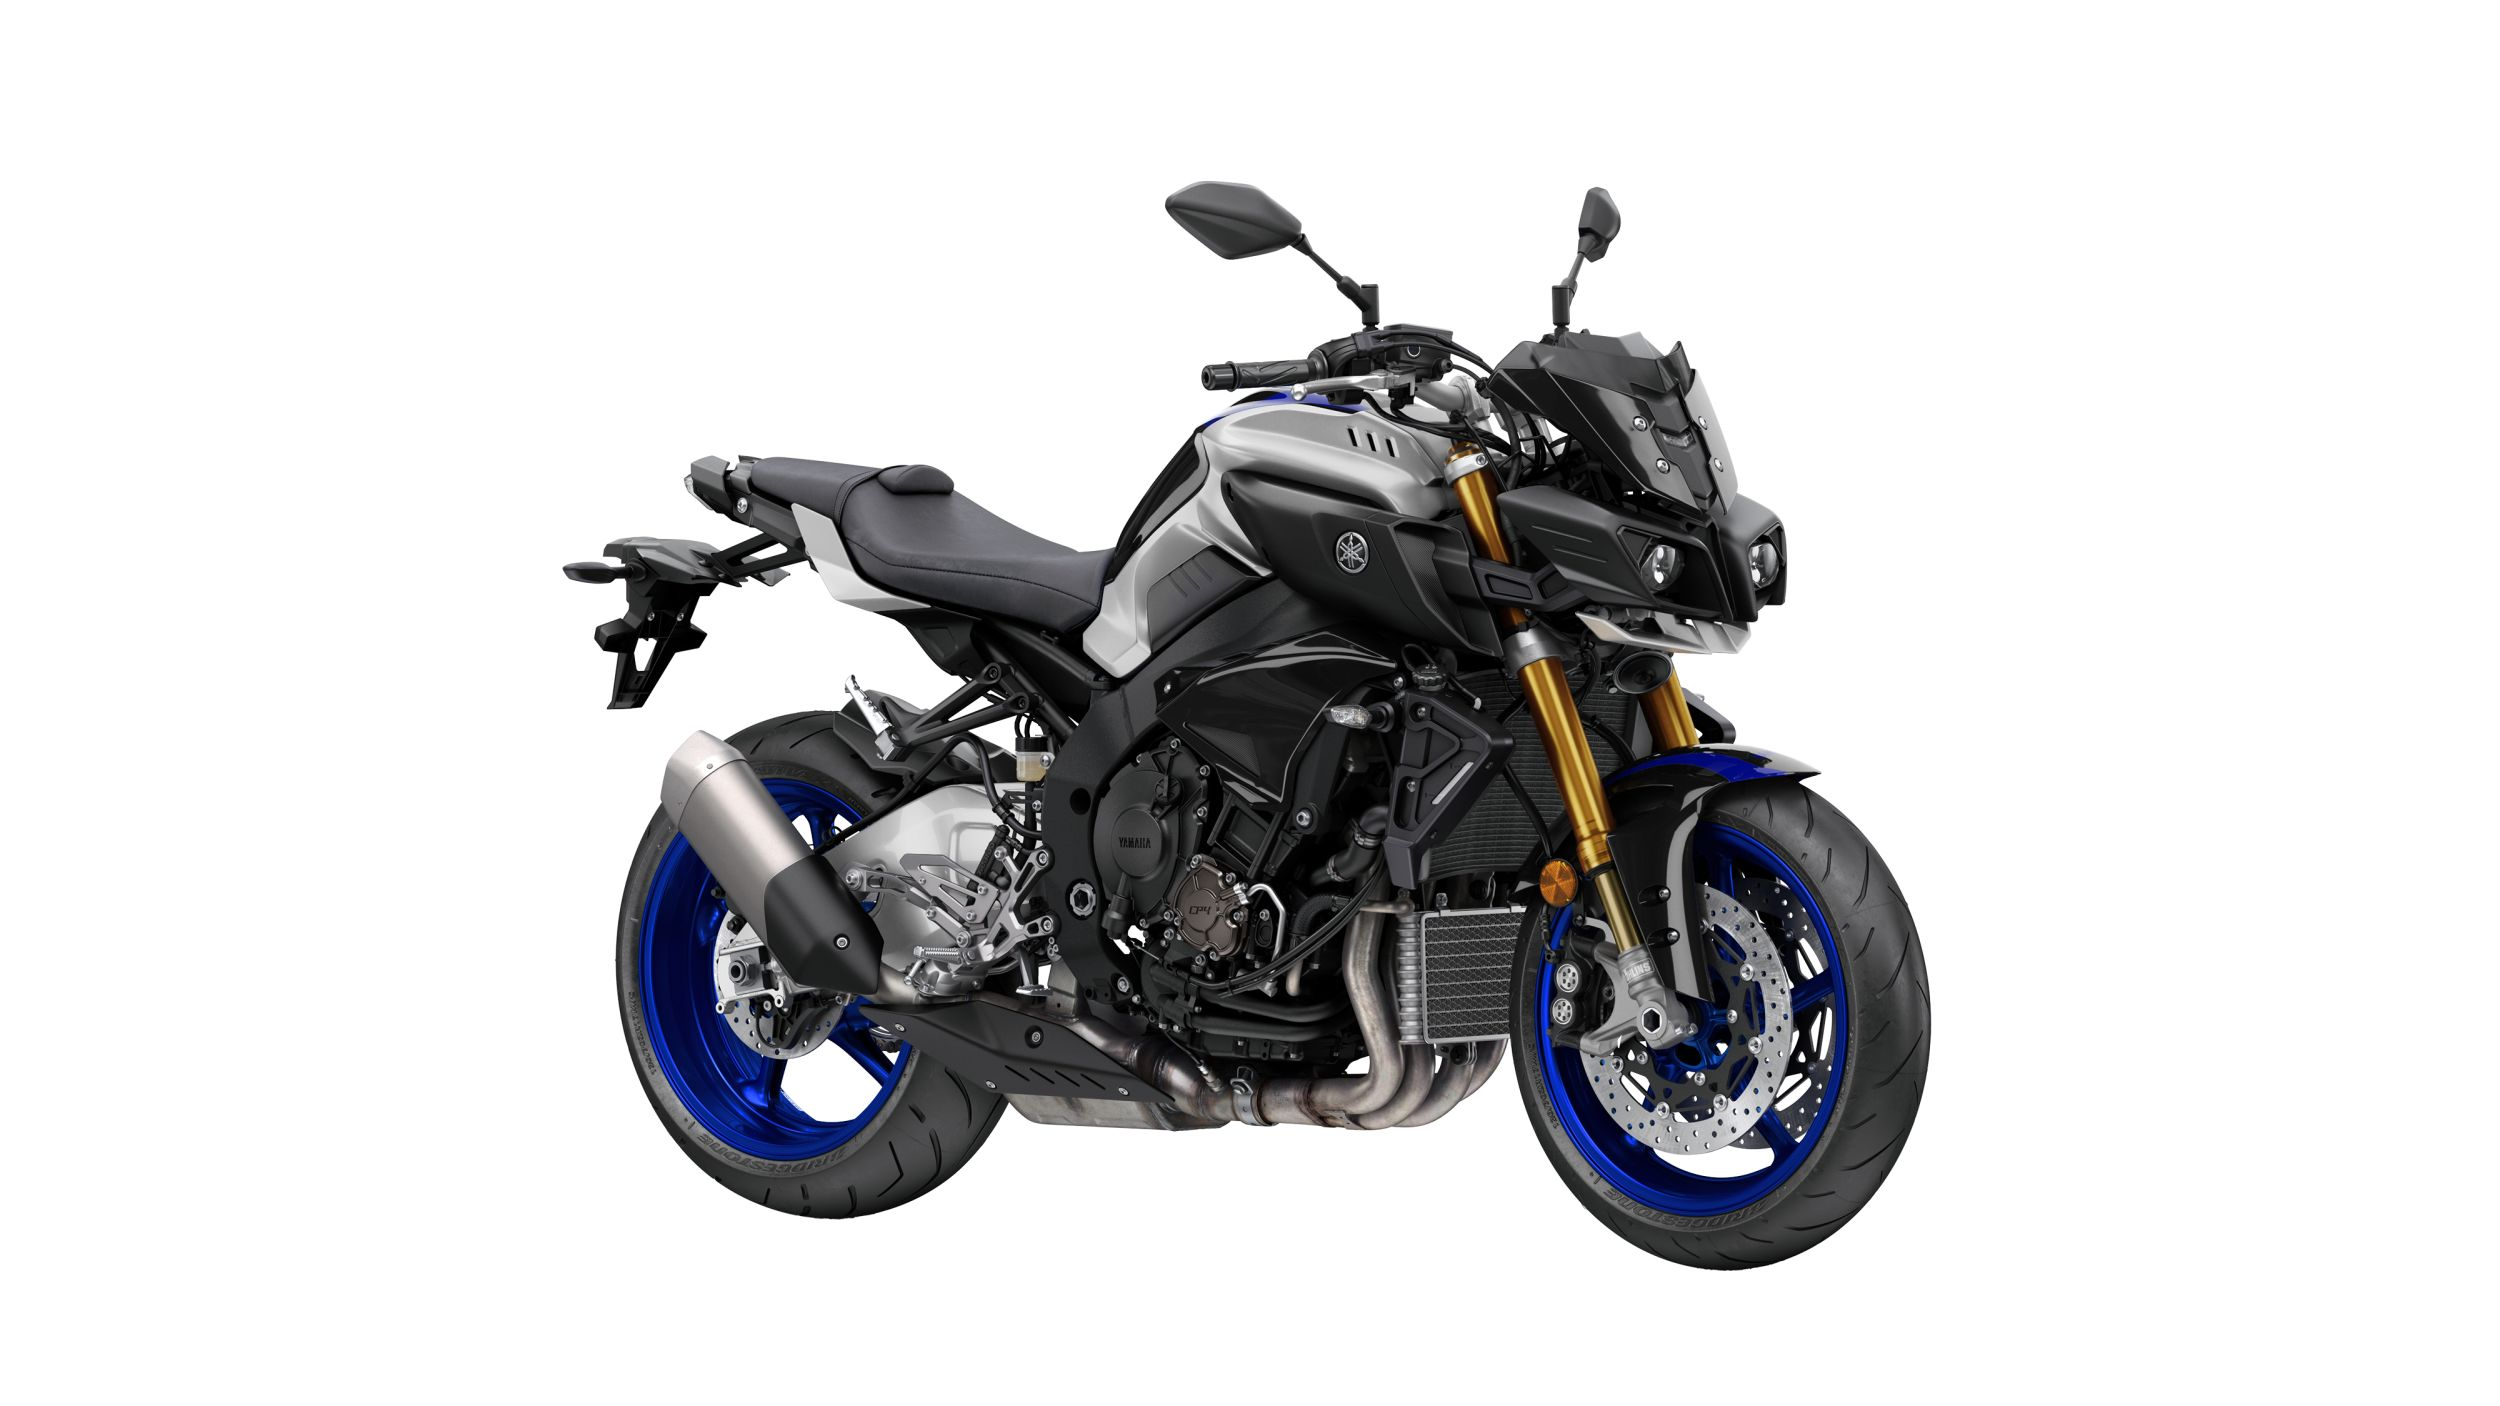 gebrauchte yamaha mt 10 sp motorr der kaufen. Black Bedroom Furniture Sets. Home Design Ideas